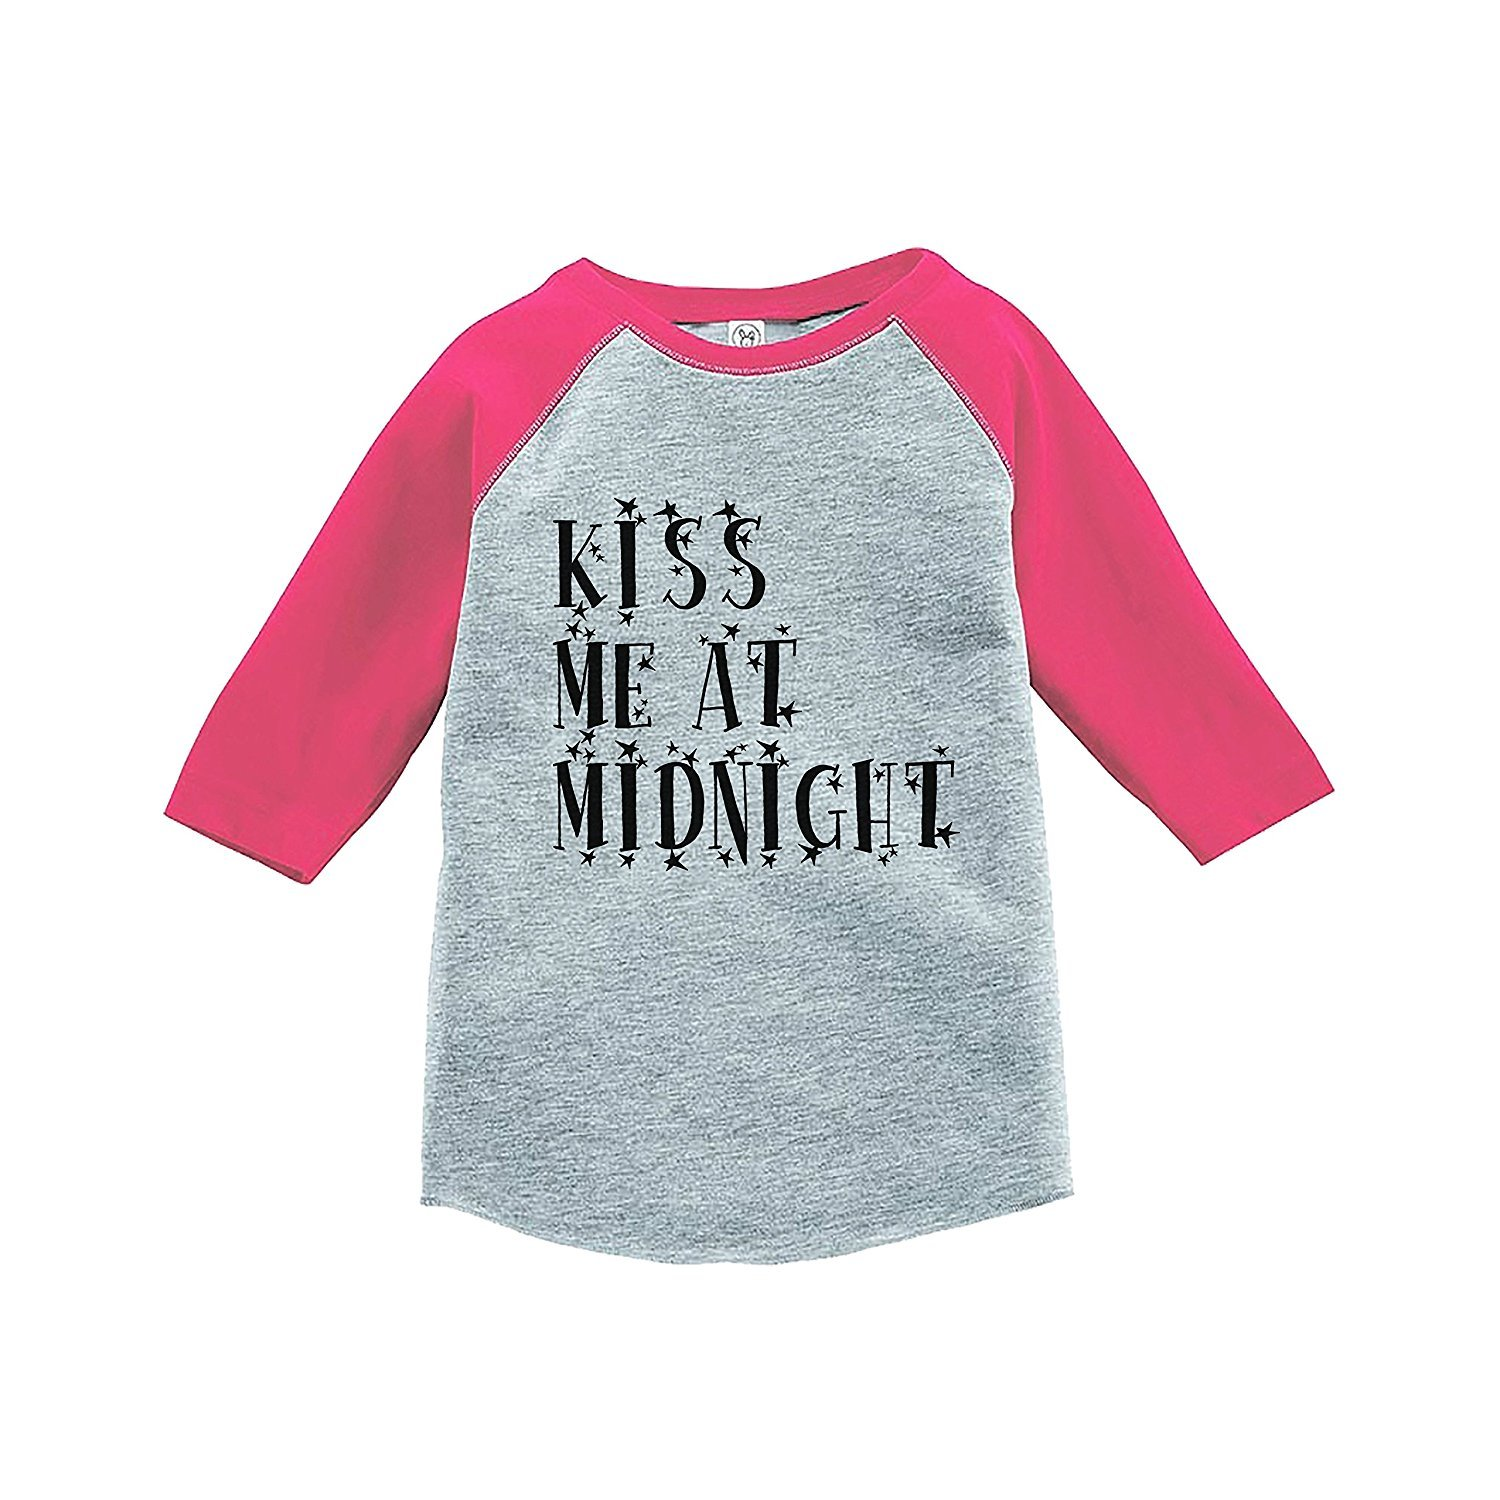 7 ate 9 Apparel Kids Kiss Me At Midnight New Year's Eve Pink Baseball Tee - 3T